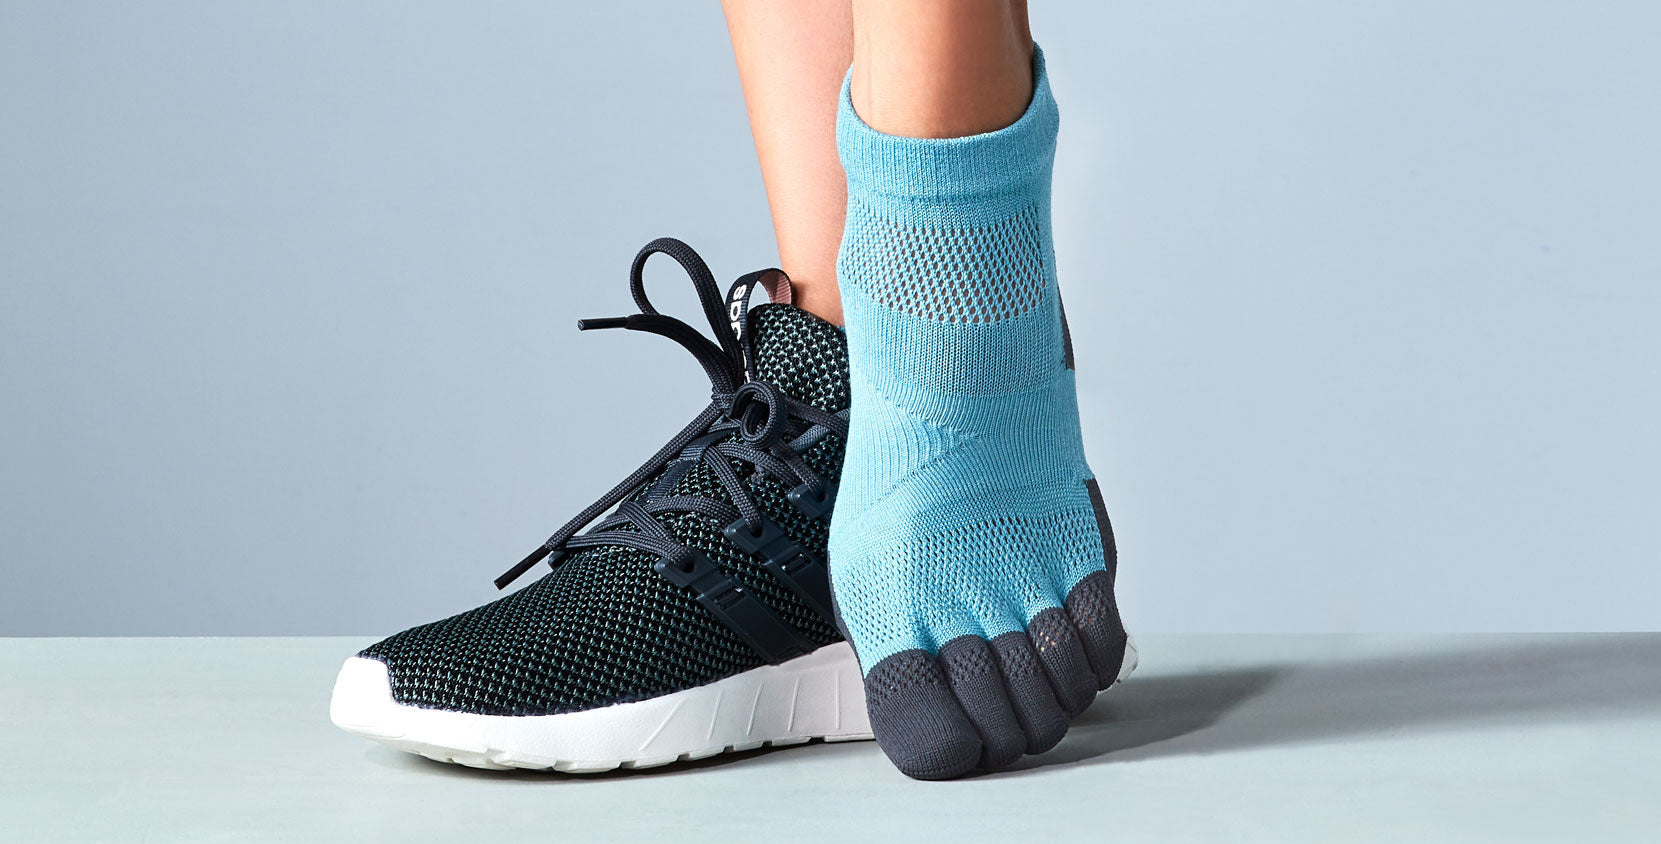 ultra-light-compression-toe-socks